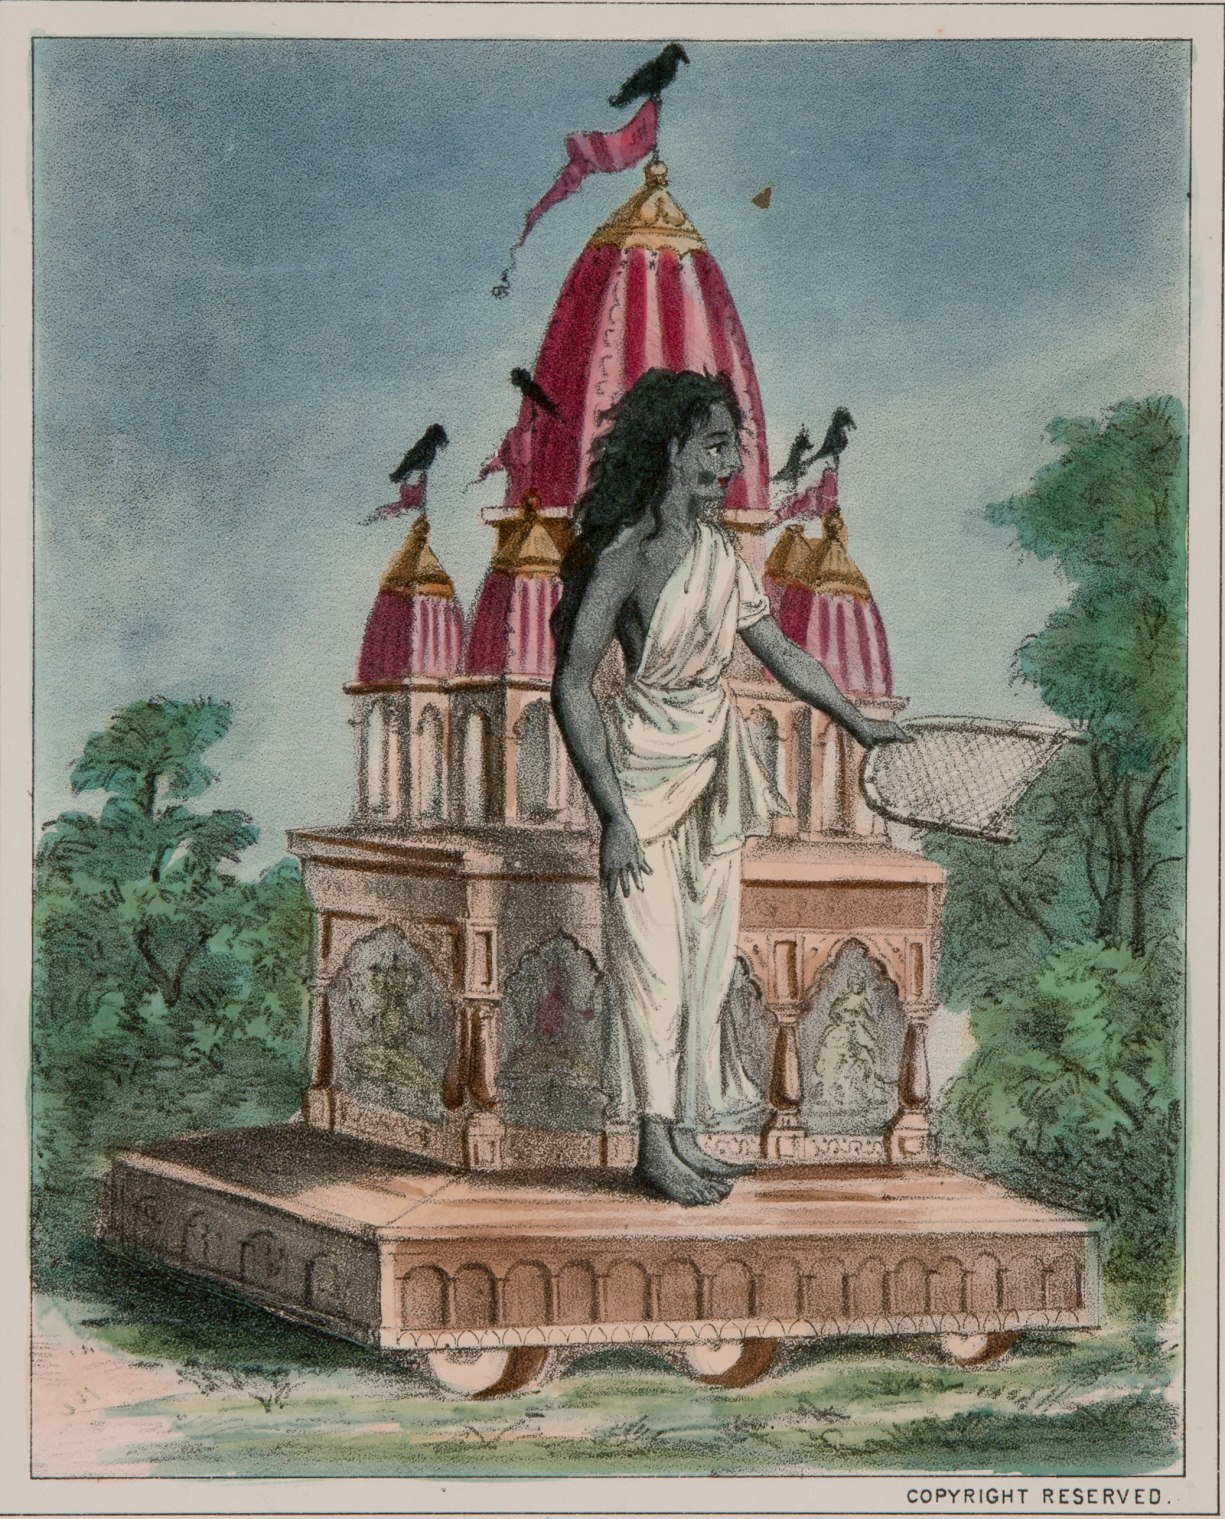 Goddess Dhumavati, One of the Mahavidya - Vintage Print, Late 19th Century